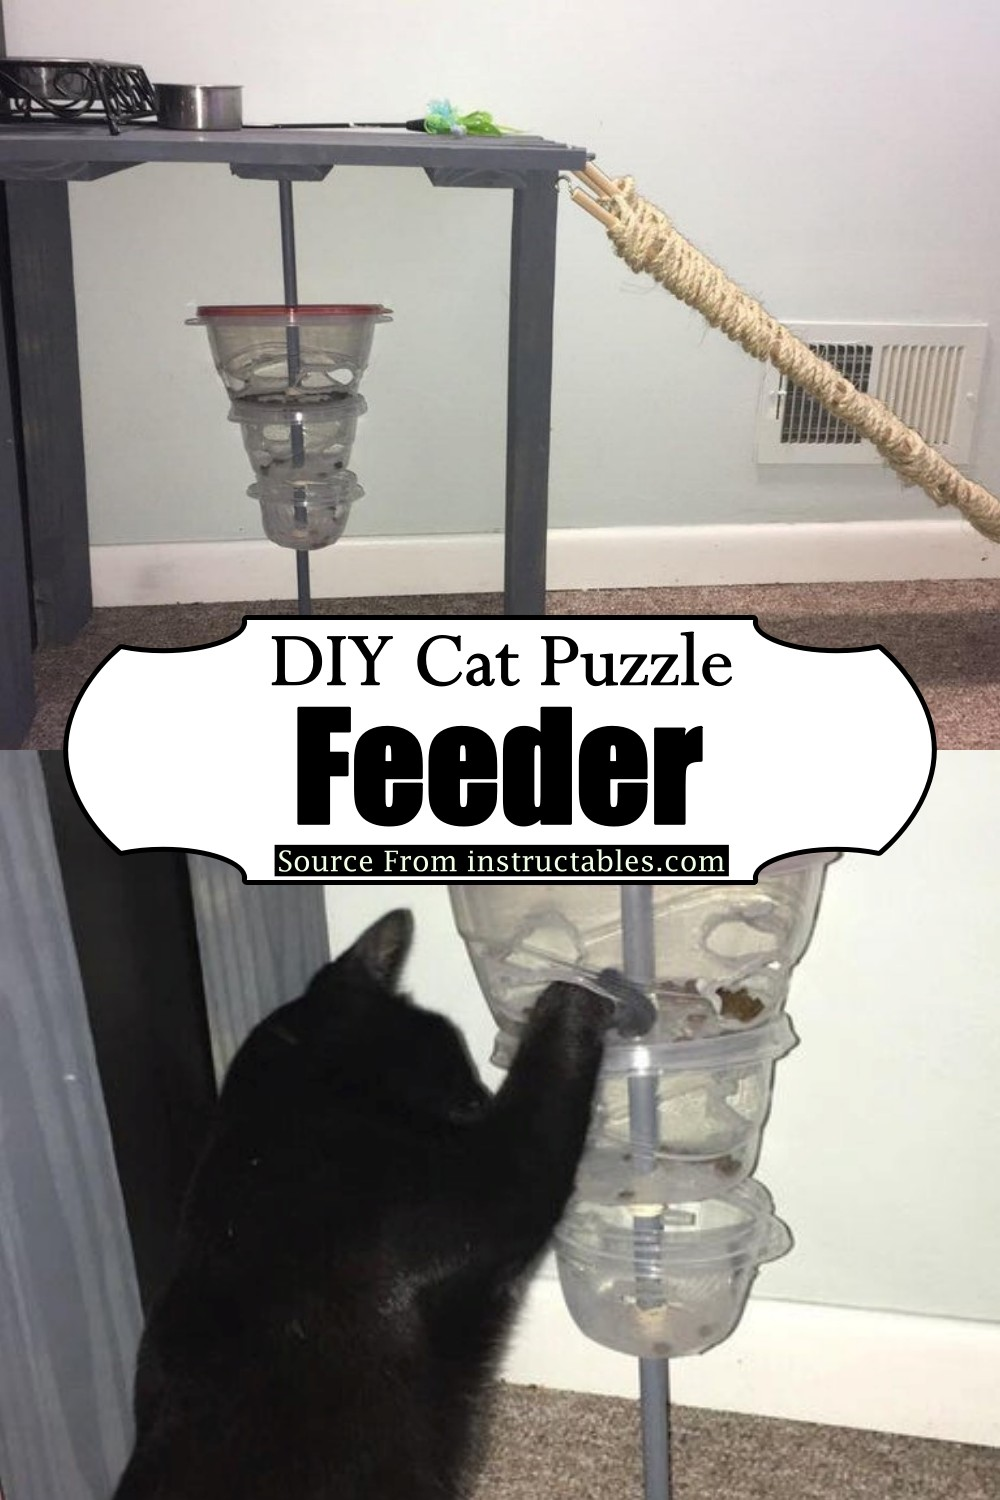 Making A Puzzle Feeder